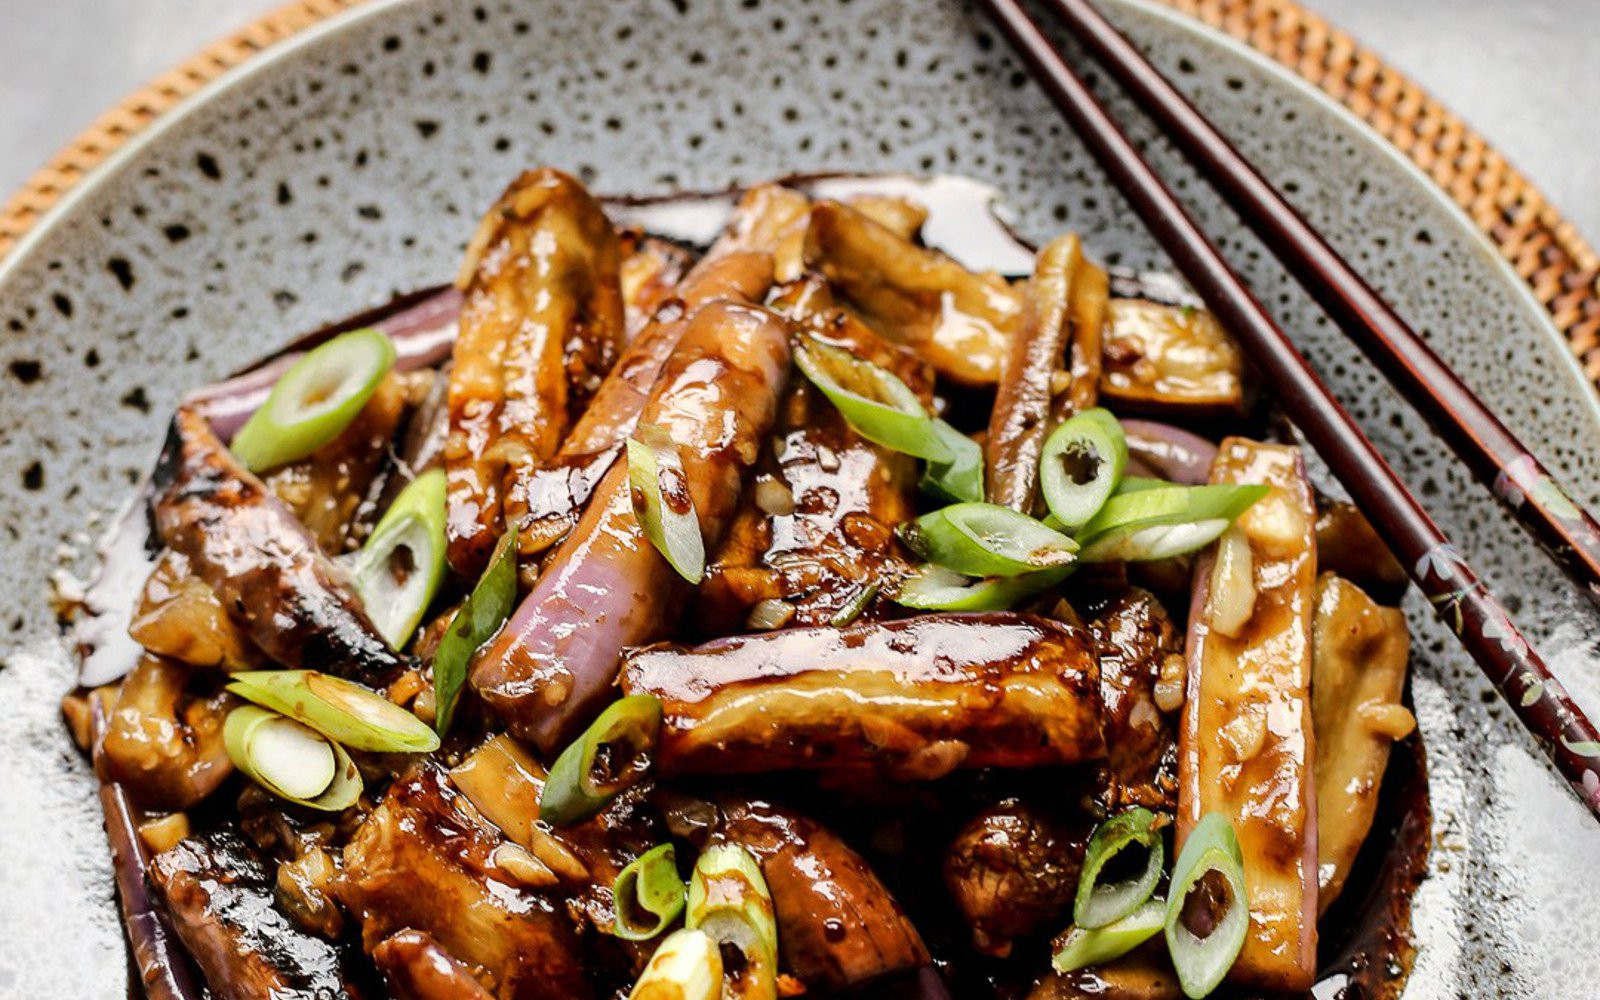 Chinese Eggplant Recipes  Chinese Eggplant With Garlic Sauce [Vegan Grain Free